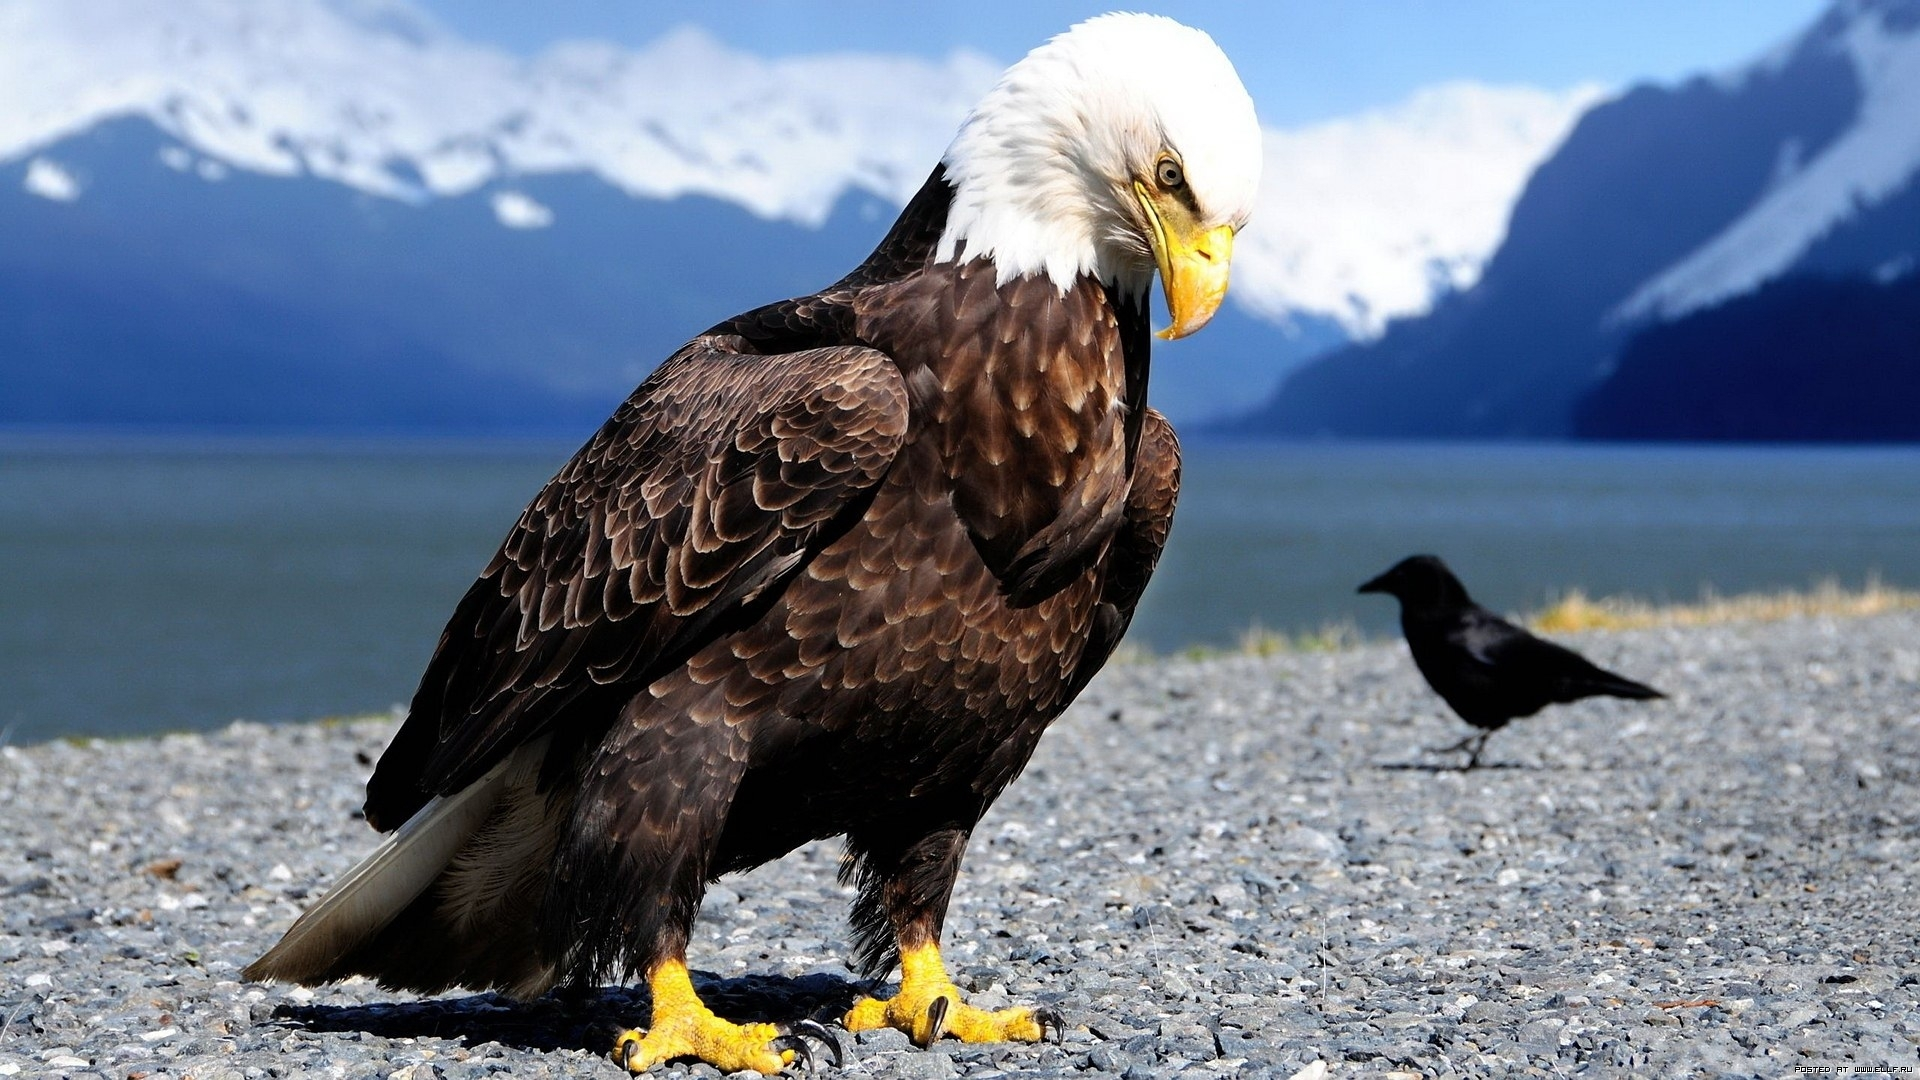 50276 download wallpaper Animals, Birds, Eagles screensavers and pictures for free